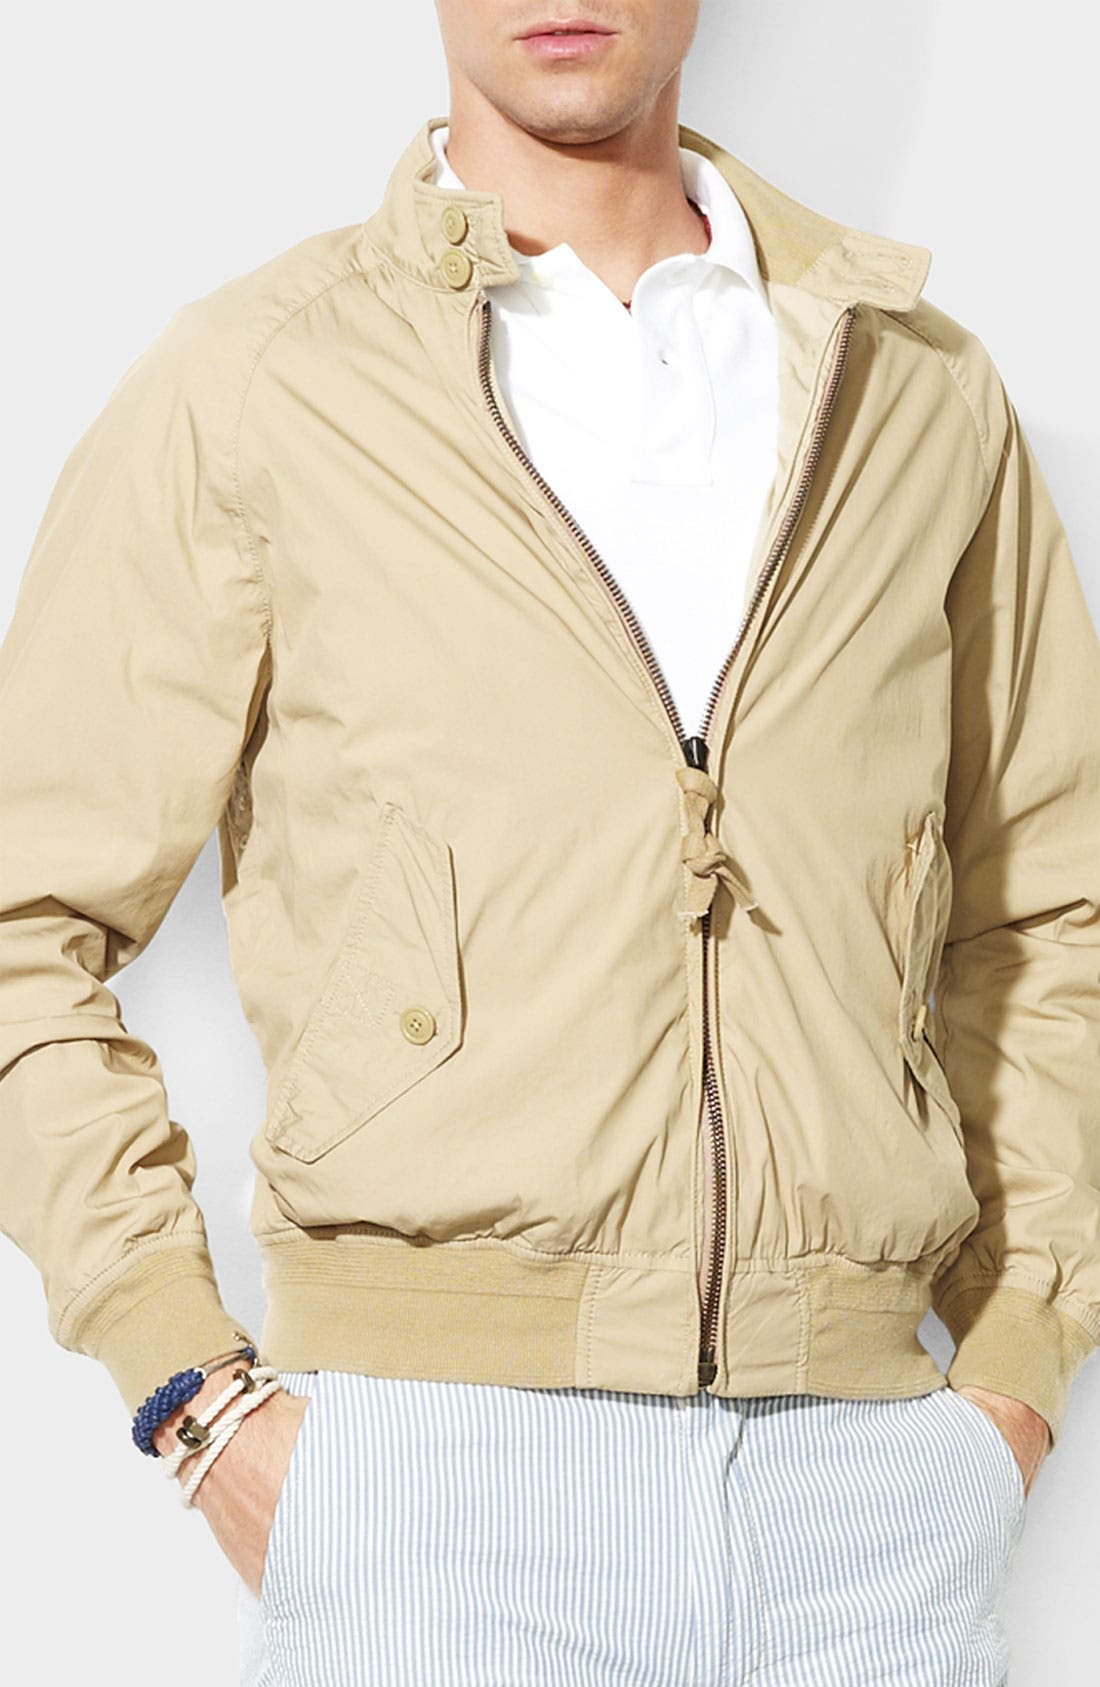 Alternate Image 1 Selected - Polo Ralph Lauren 'Barracuda' Classic Fit Jacket